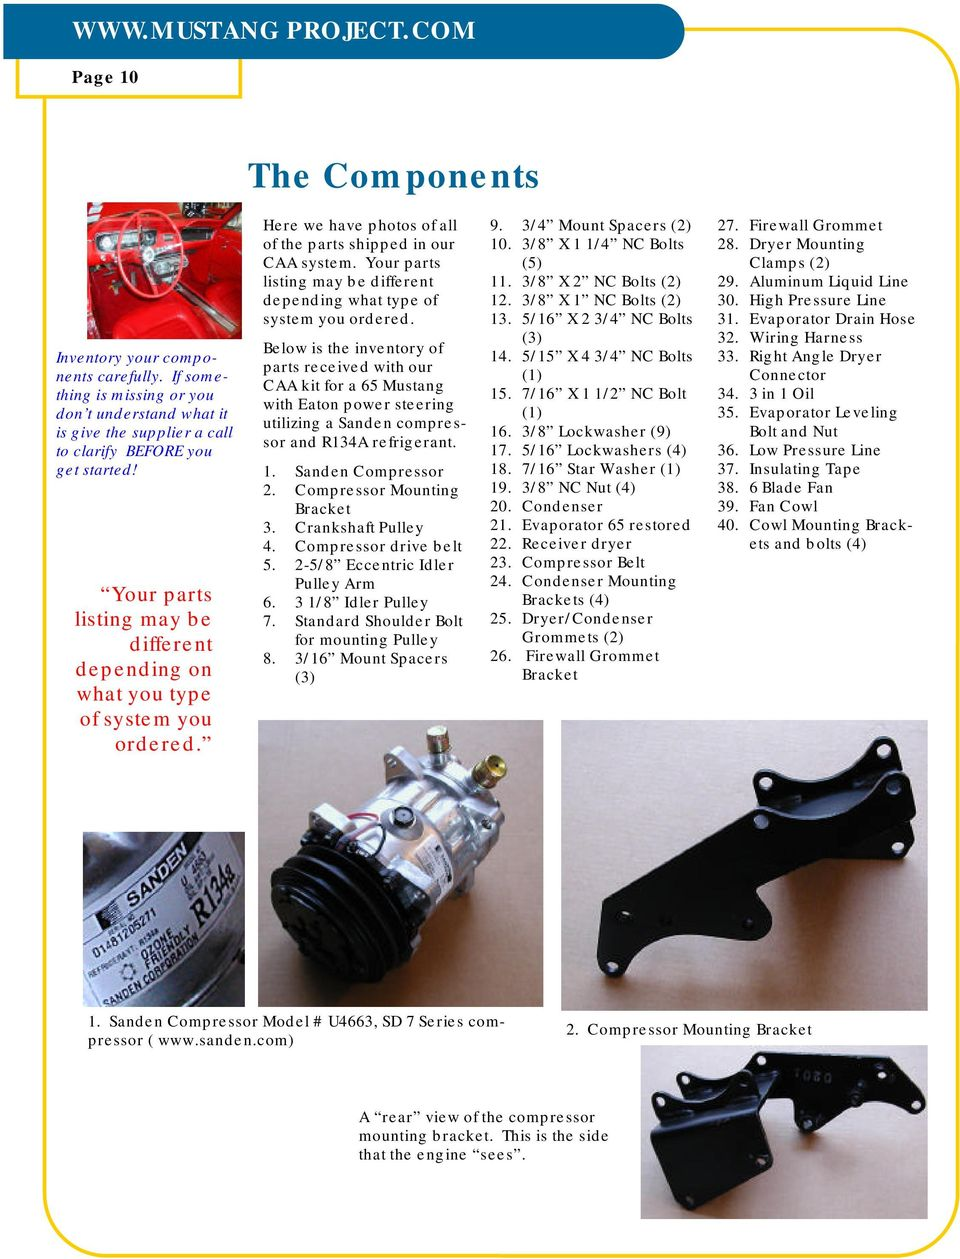 Projectcom Pdf Wiring Harness Firewall Grommet Your Parts Listing May Be Different Depending On What You Type Of System Ordered